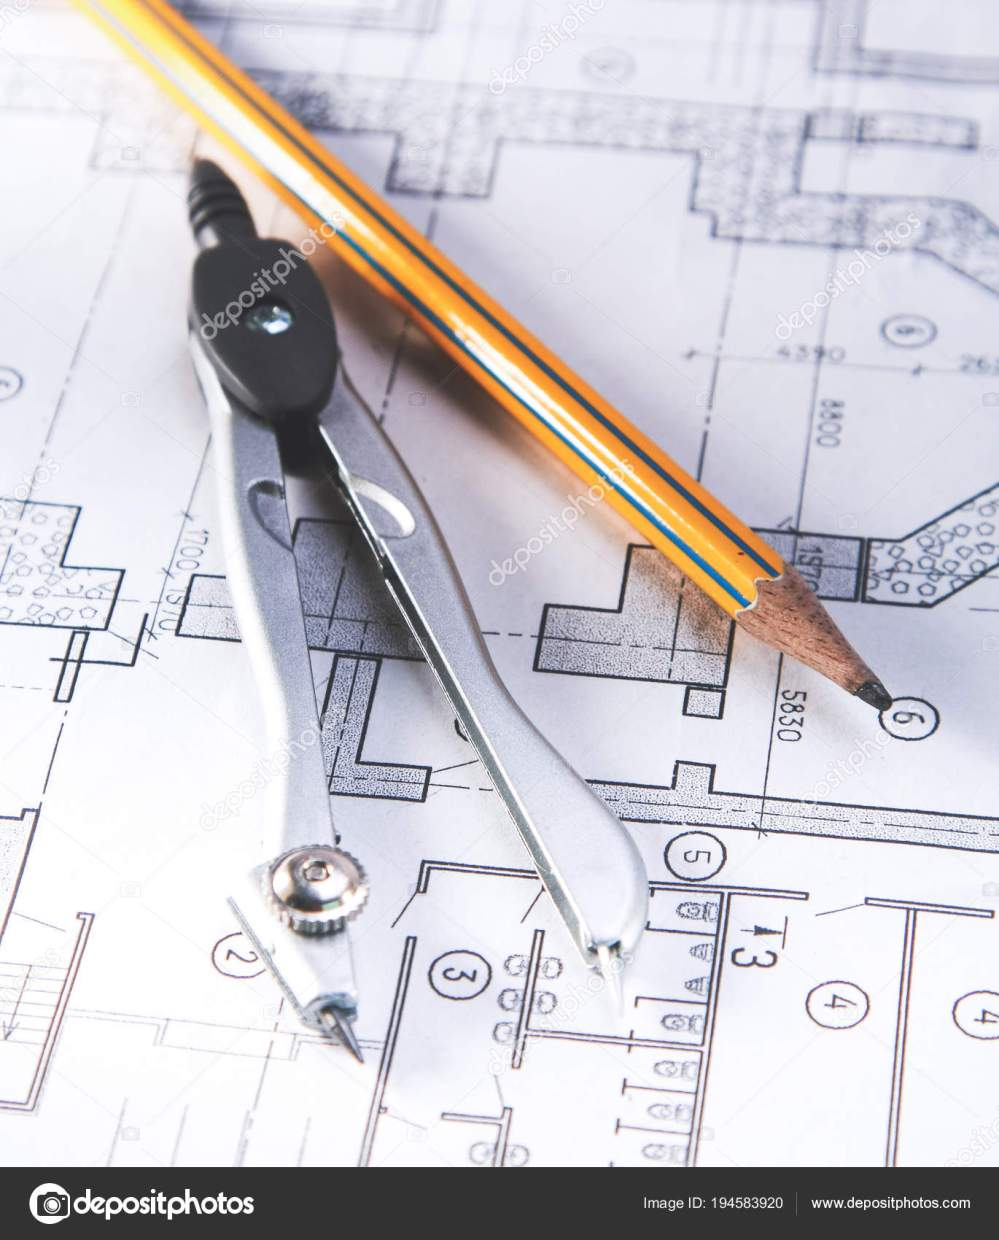 medium resolution of architectural plans compass and ruler on the desk stock image